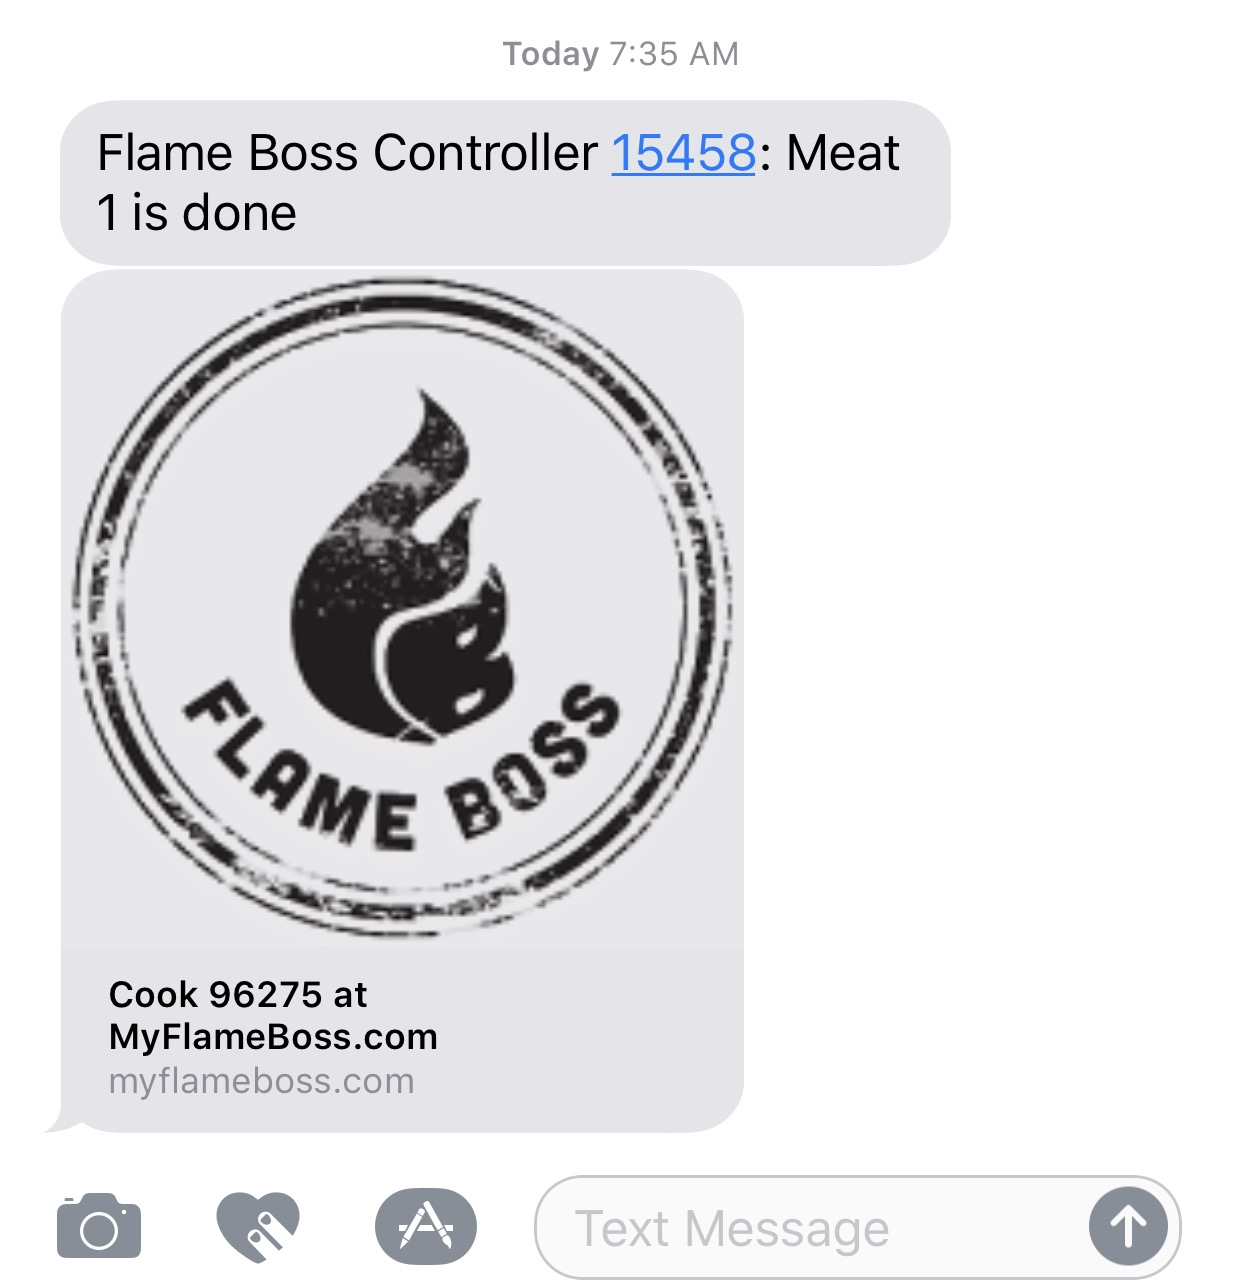 My text alert informing me the meat is done!